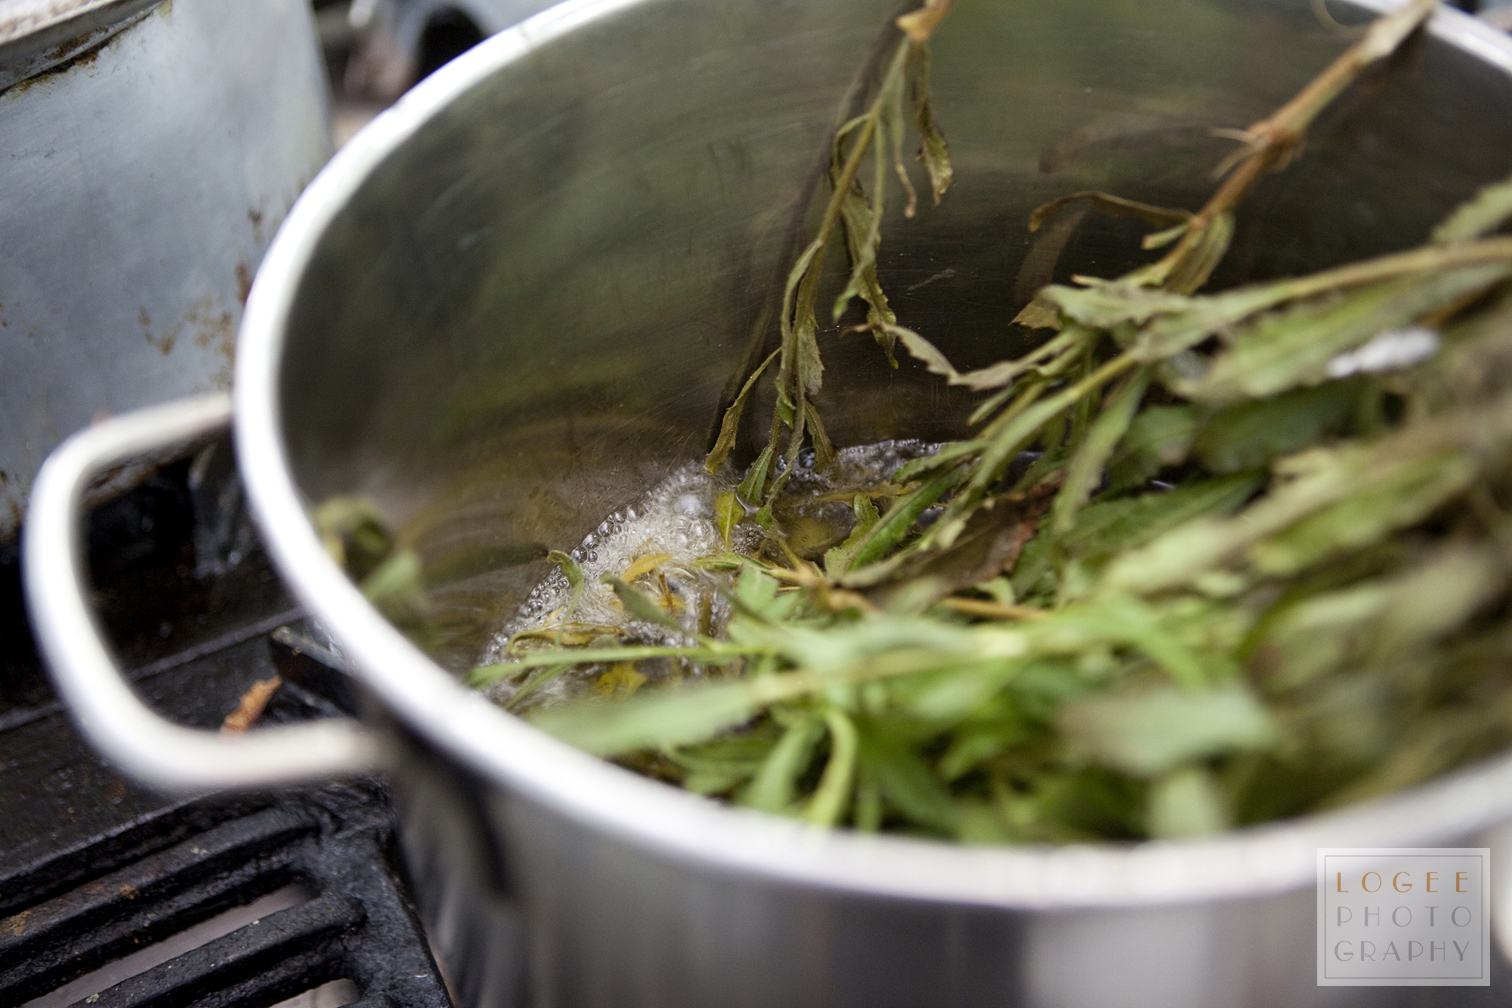 Boiling the Inula viscosa leaves.